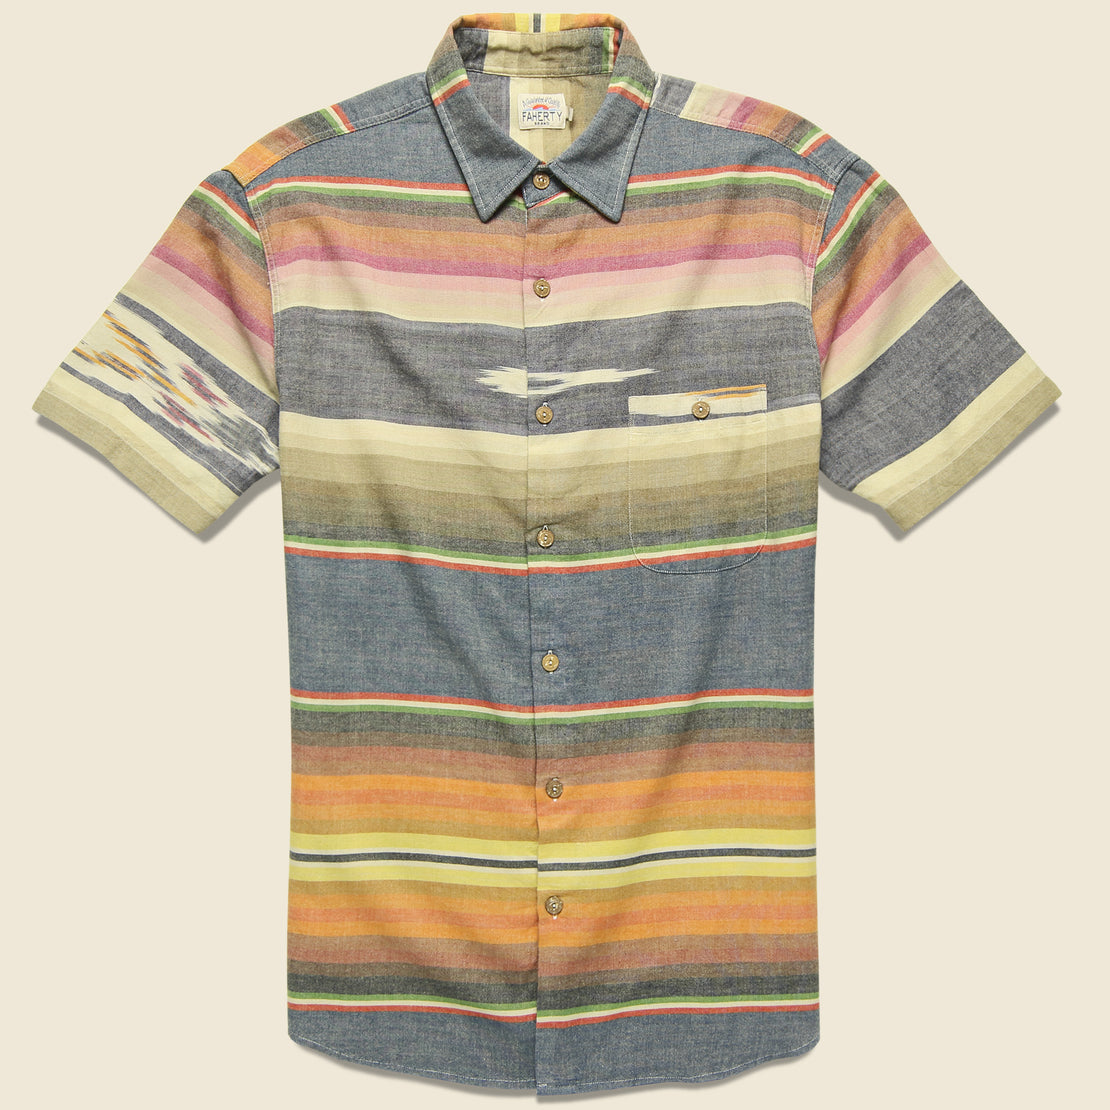 Faherty Ikat Coast Shirt - Multi